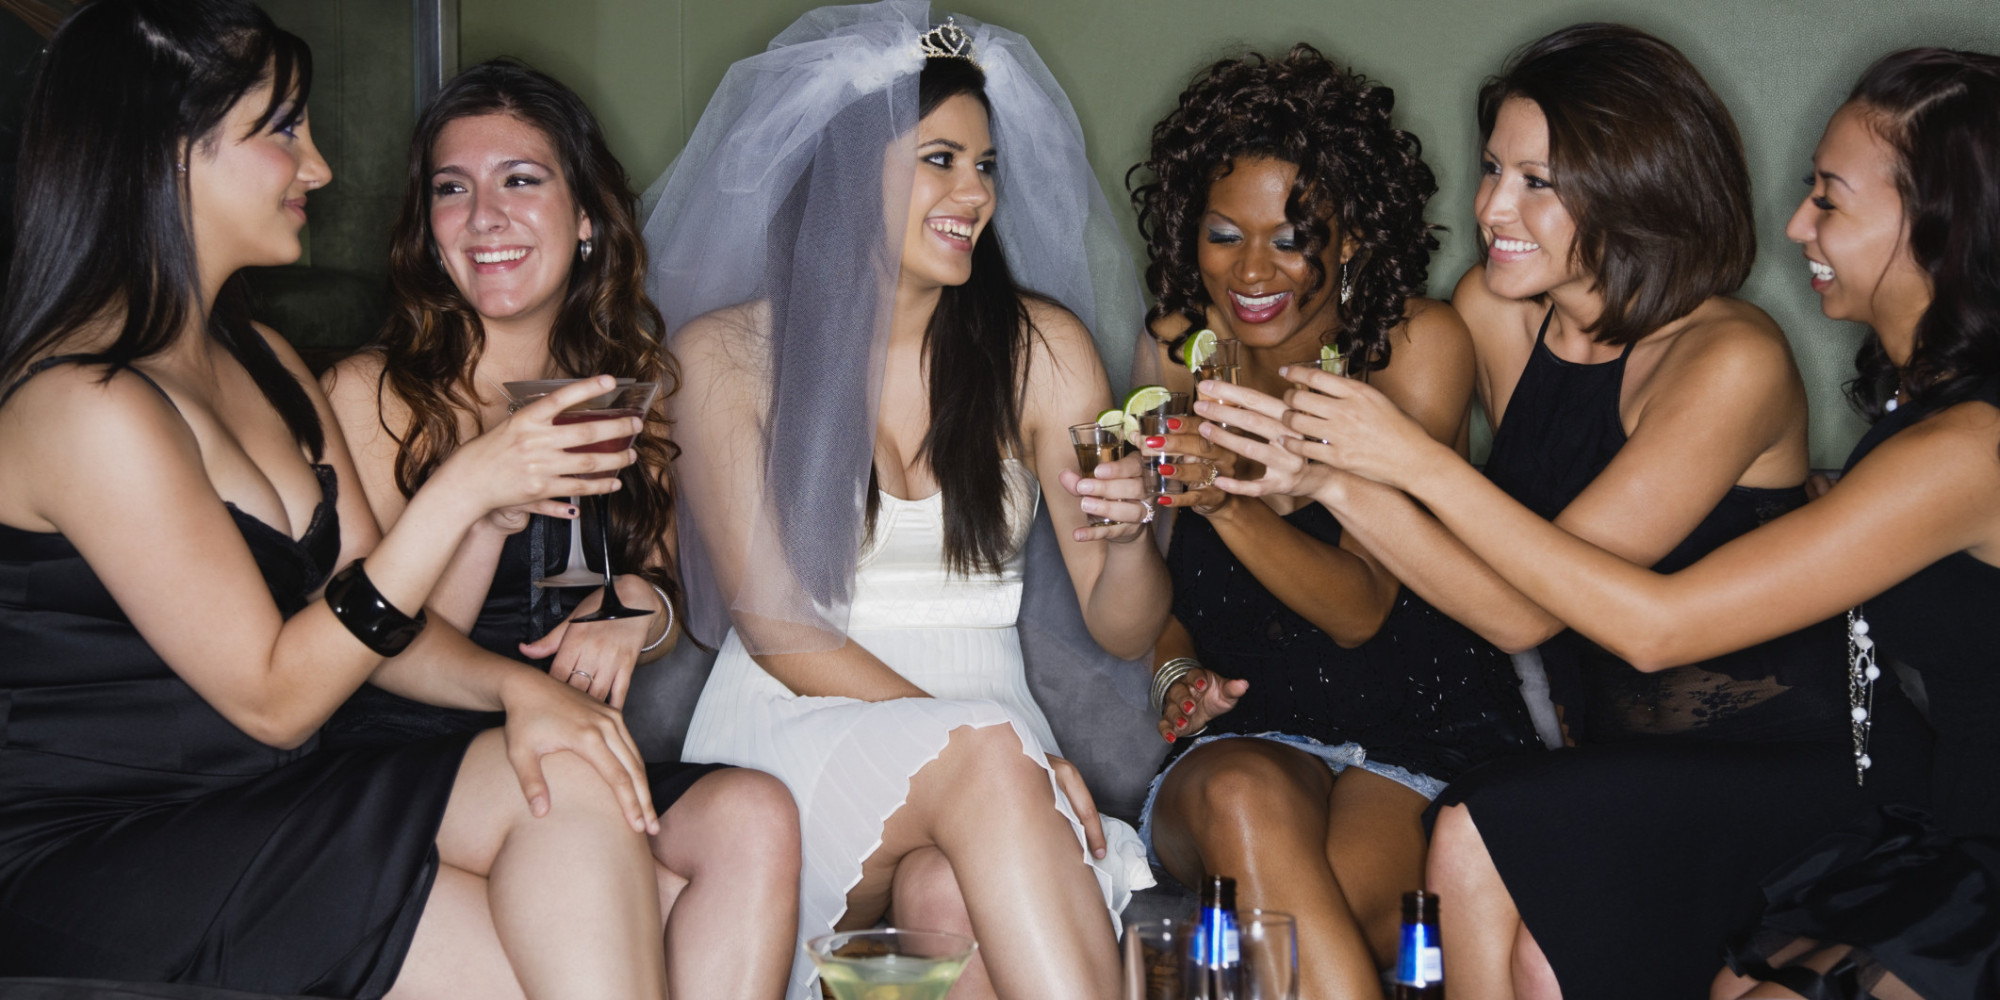 10 Easy Steps To Plan The Perfect Bachelorette Party